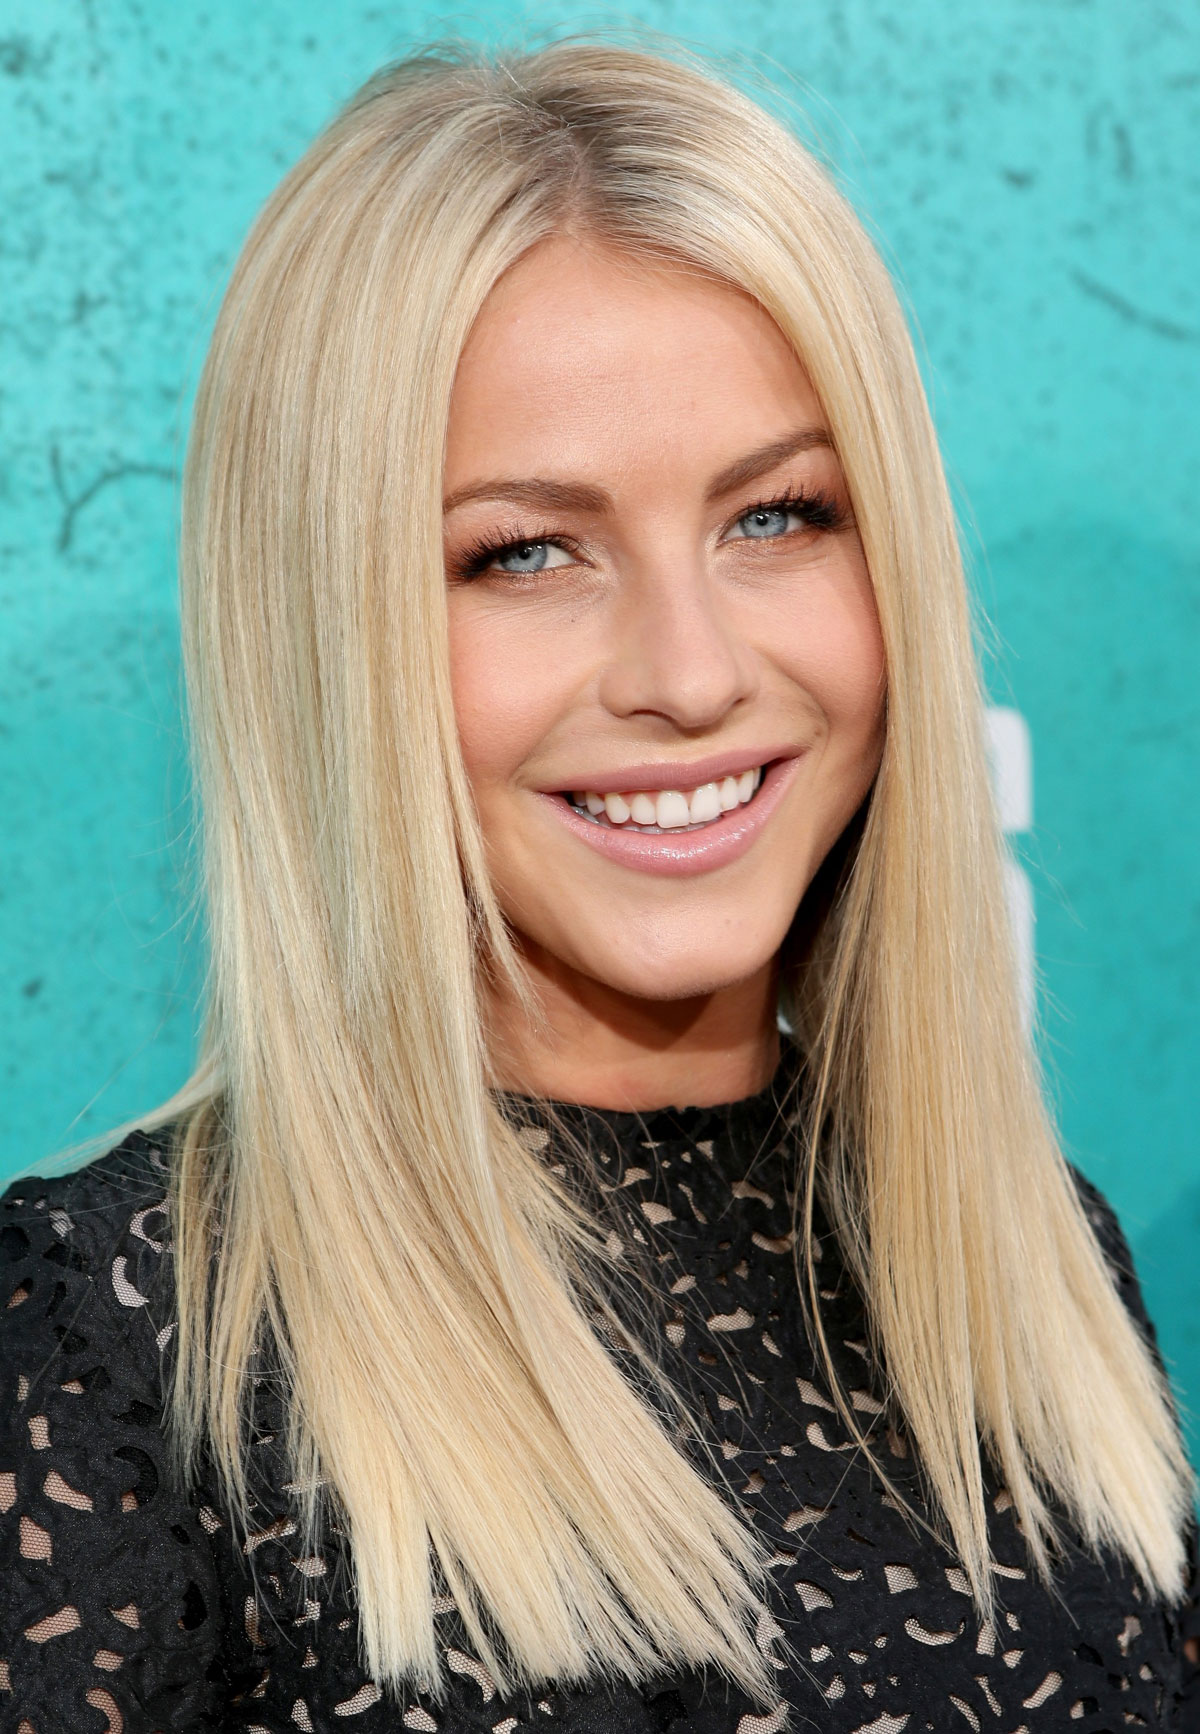 Julianne hough at mtv movie awards 2012 at universal studios in los